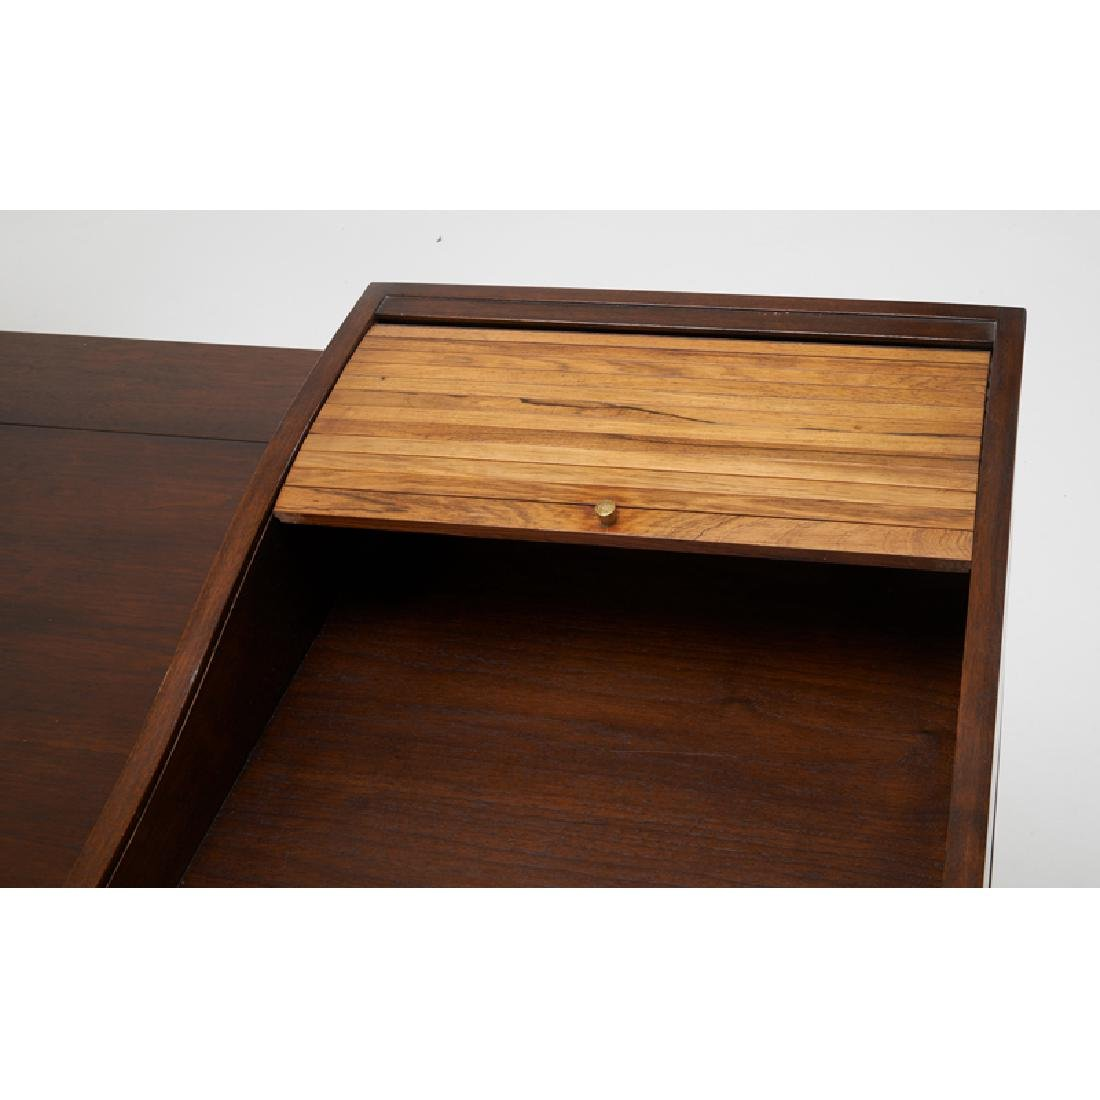 EDWARD WORMLEY Tambour desk - 4